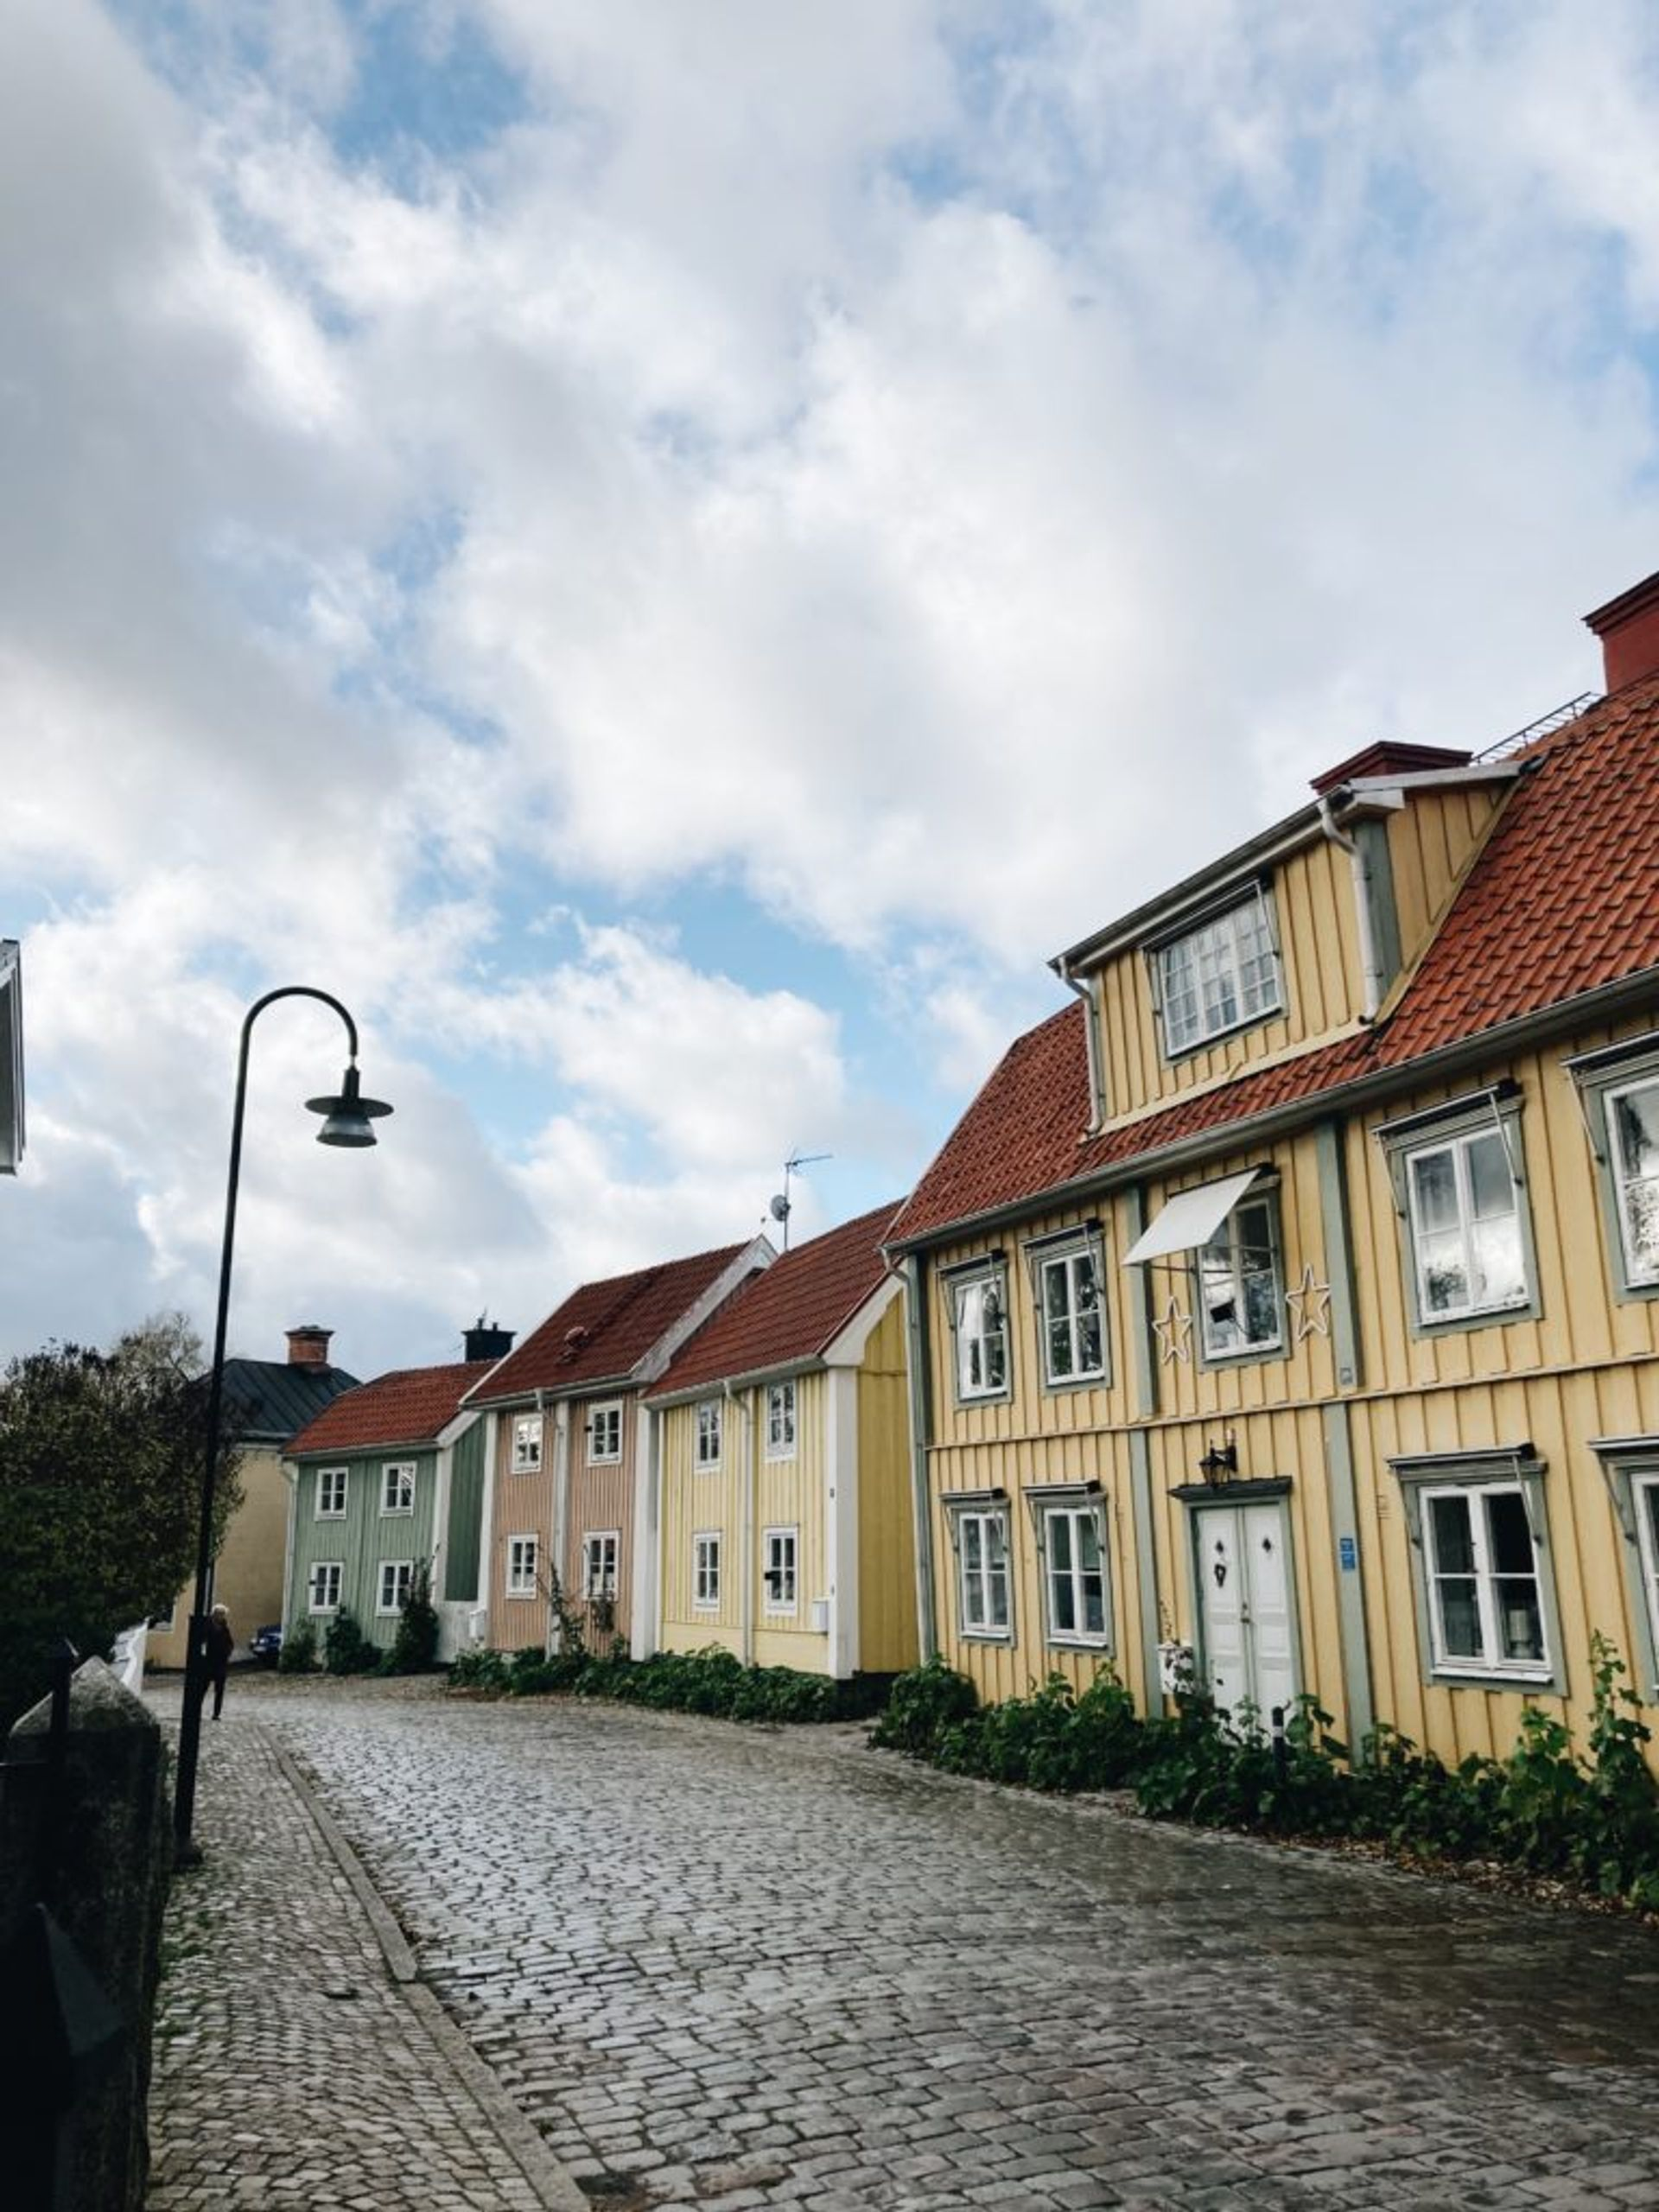 a street with small colourful houses